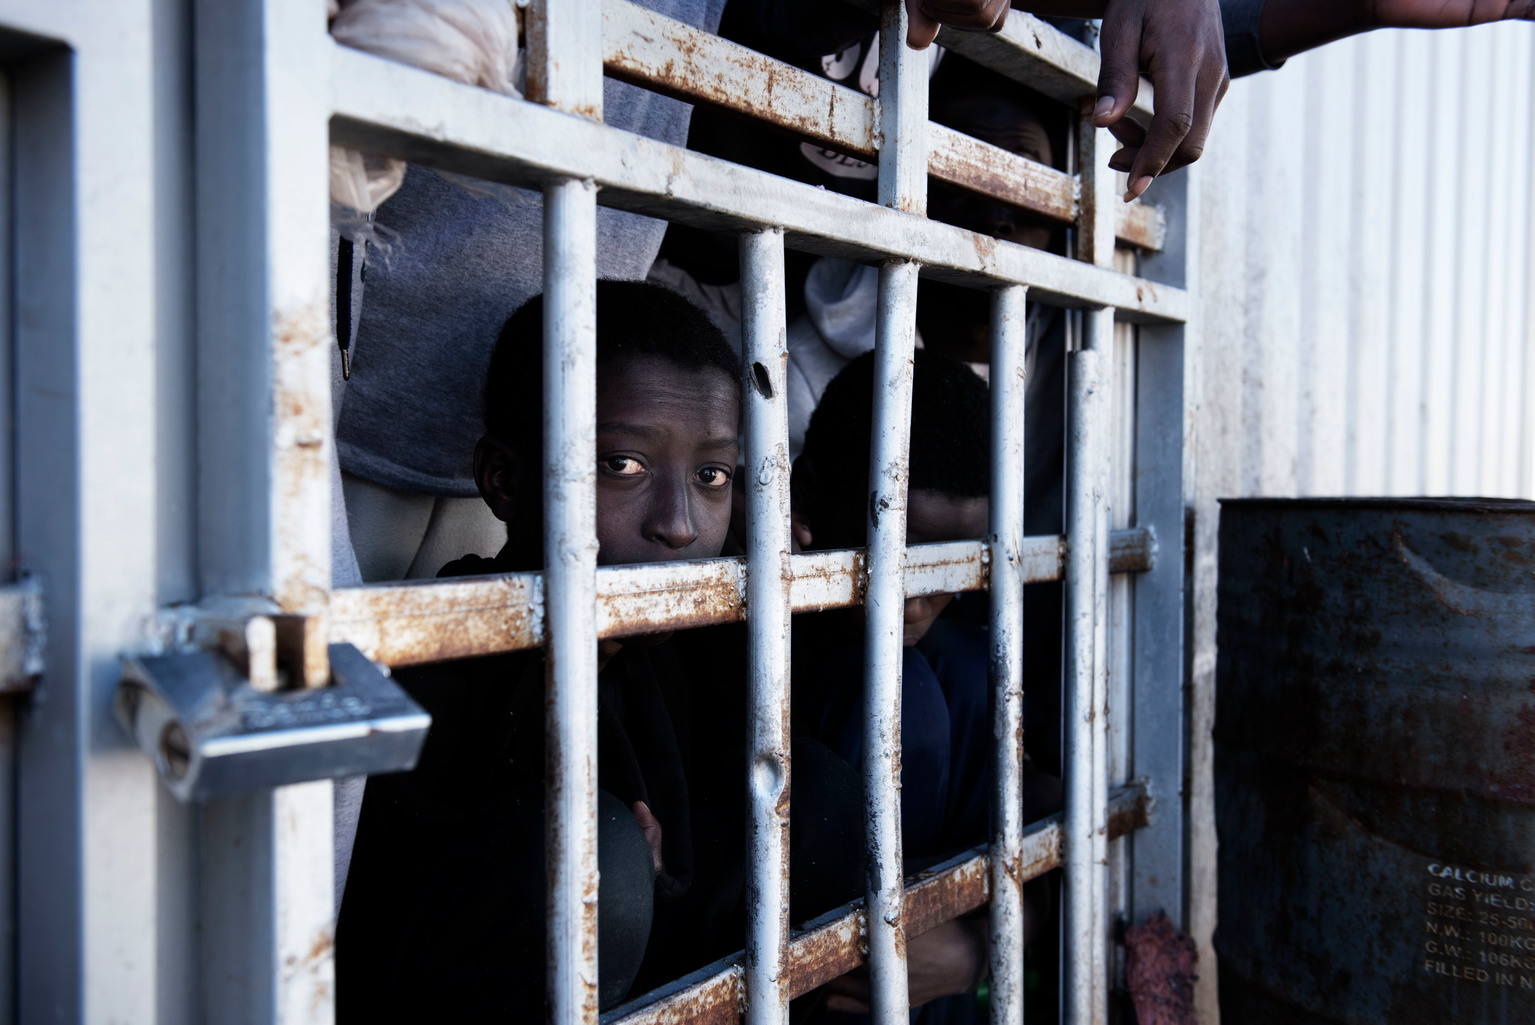 A boy looks out from behind the bars of a cell at a detention centre.